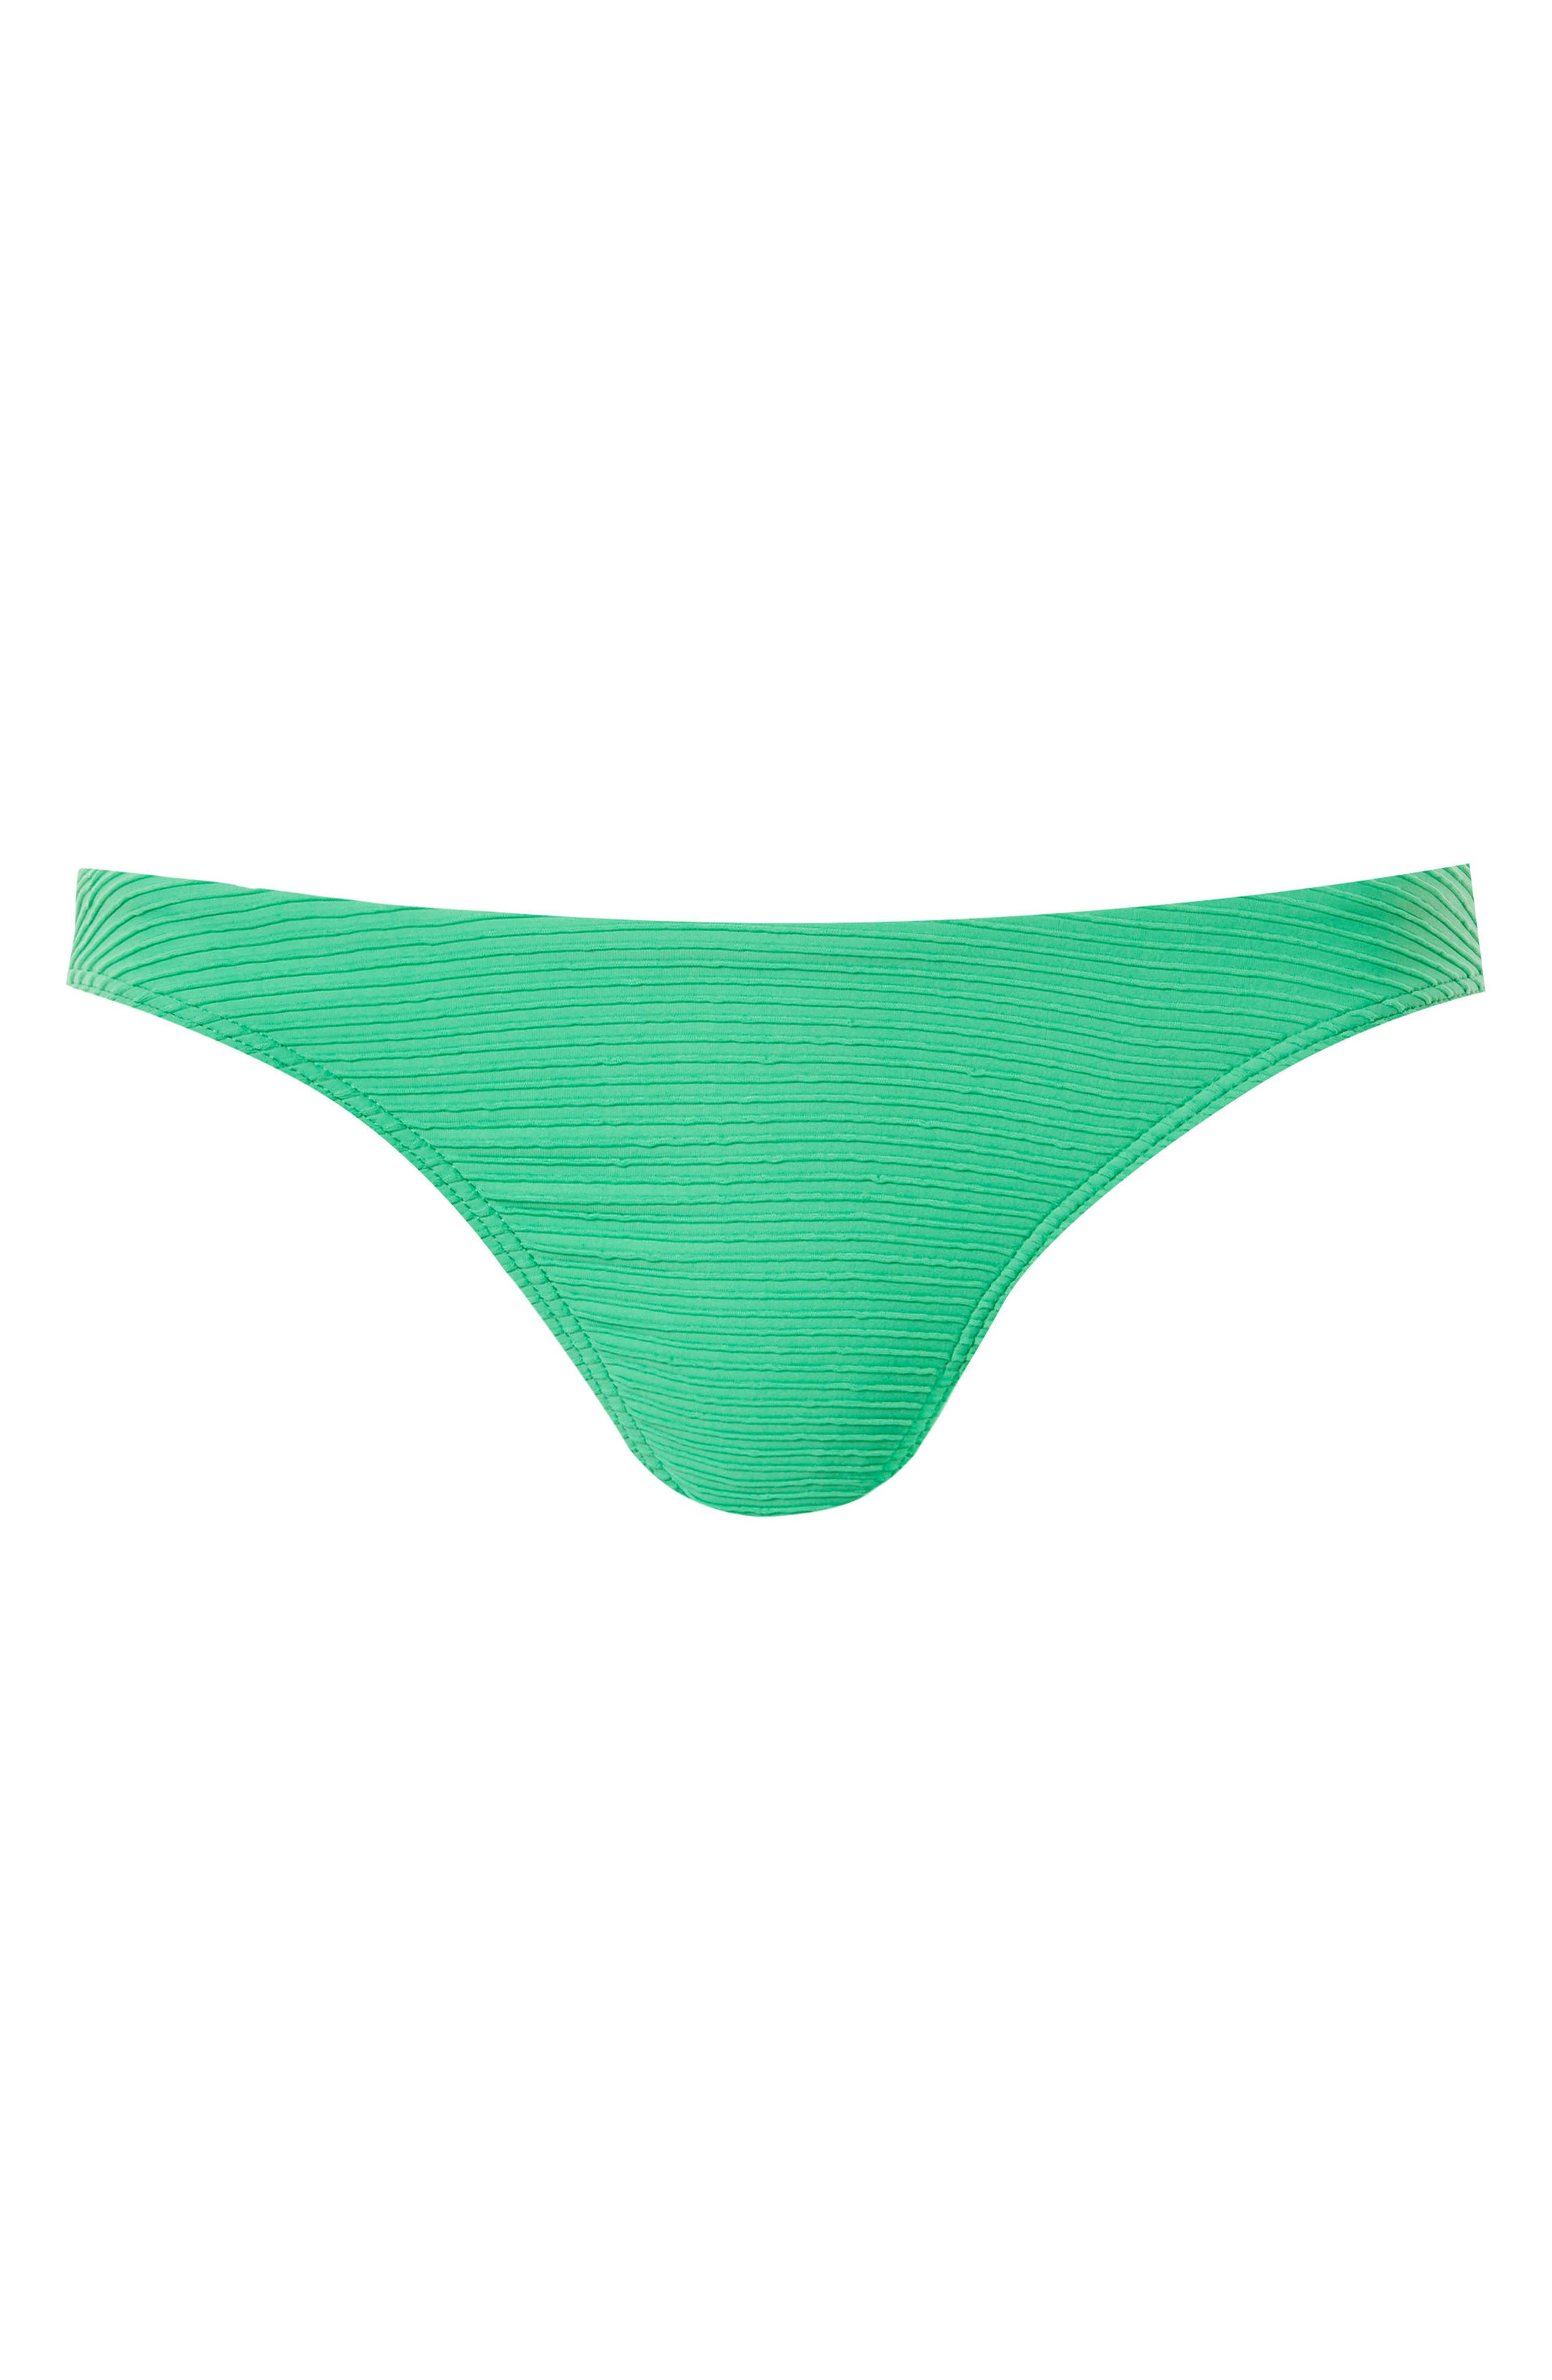 Ribbed High Leg Bikini Bottoms,                             Alternate thumbnail 4, color,                             Green